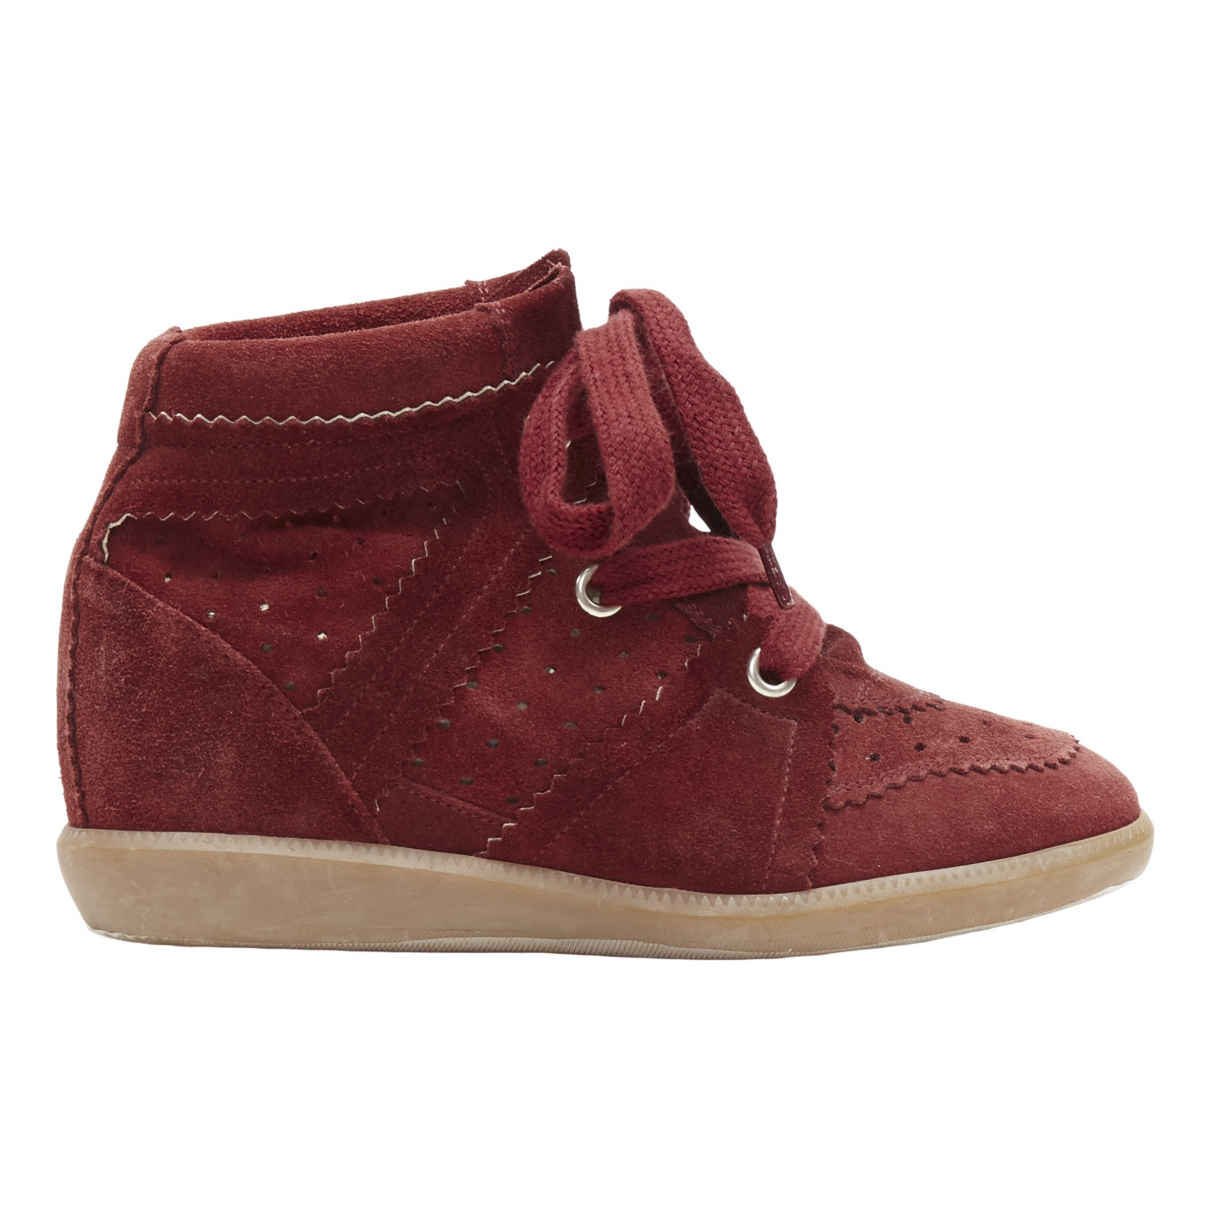 Isabel Marant - Baskets Betty pour femme en suede - bordeaux